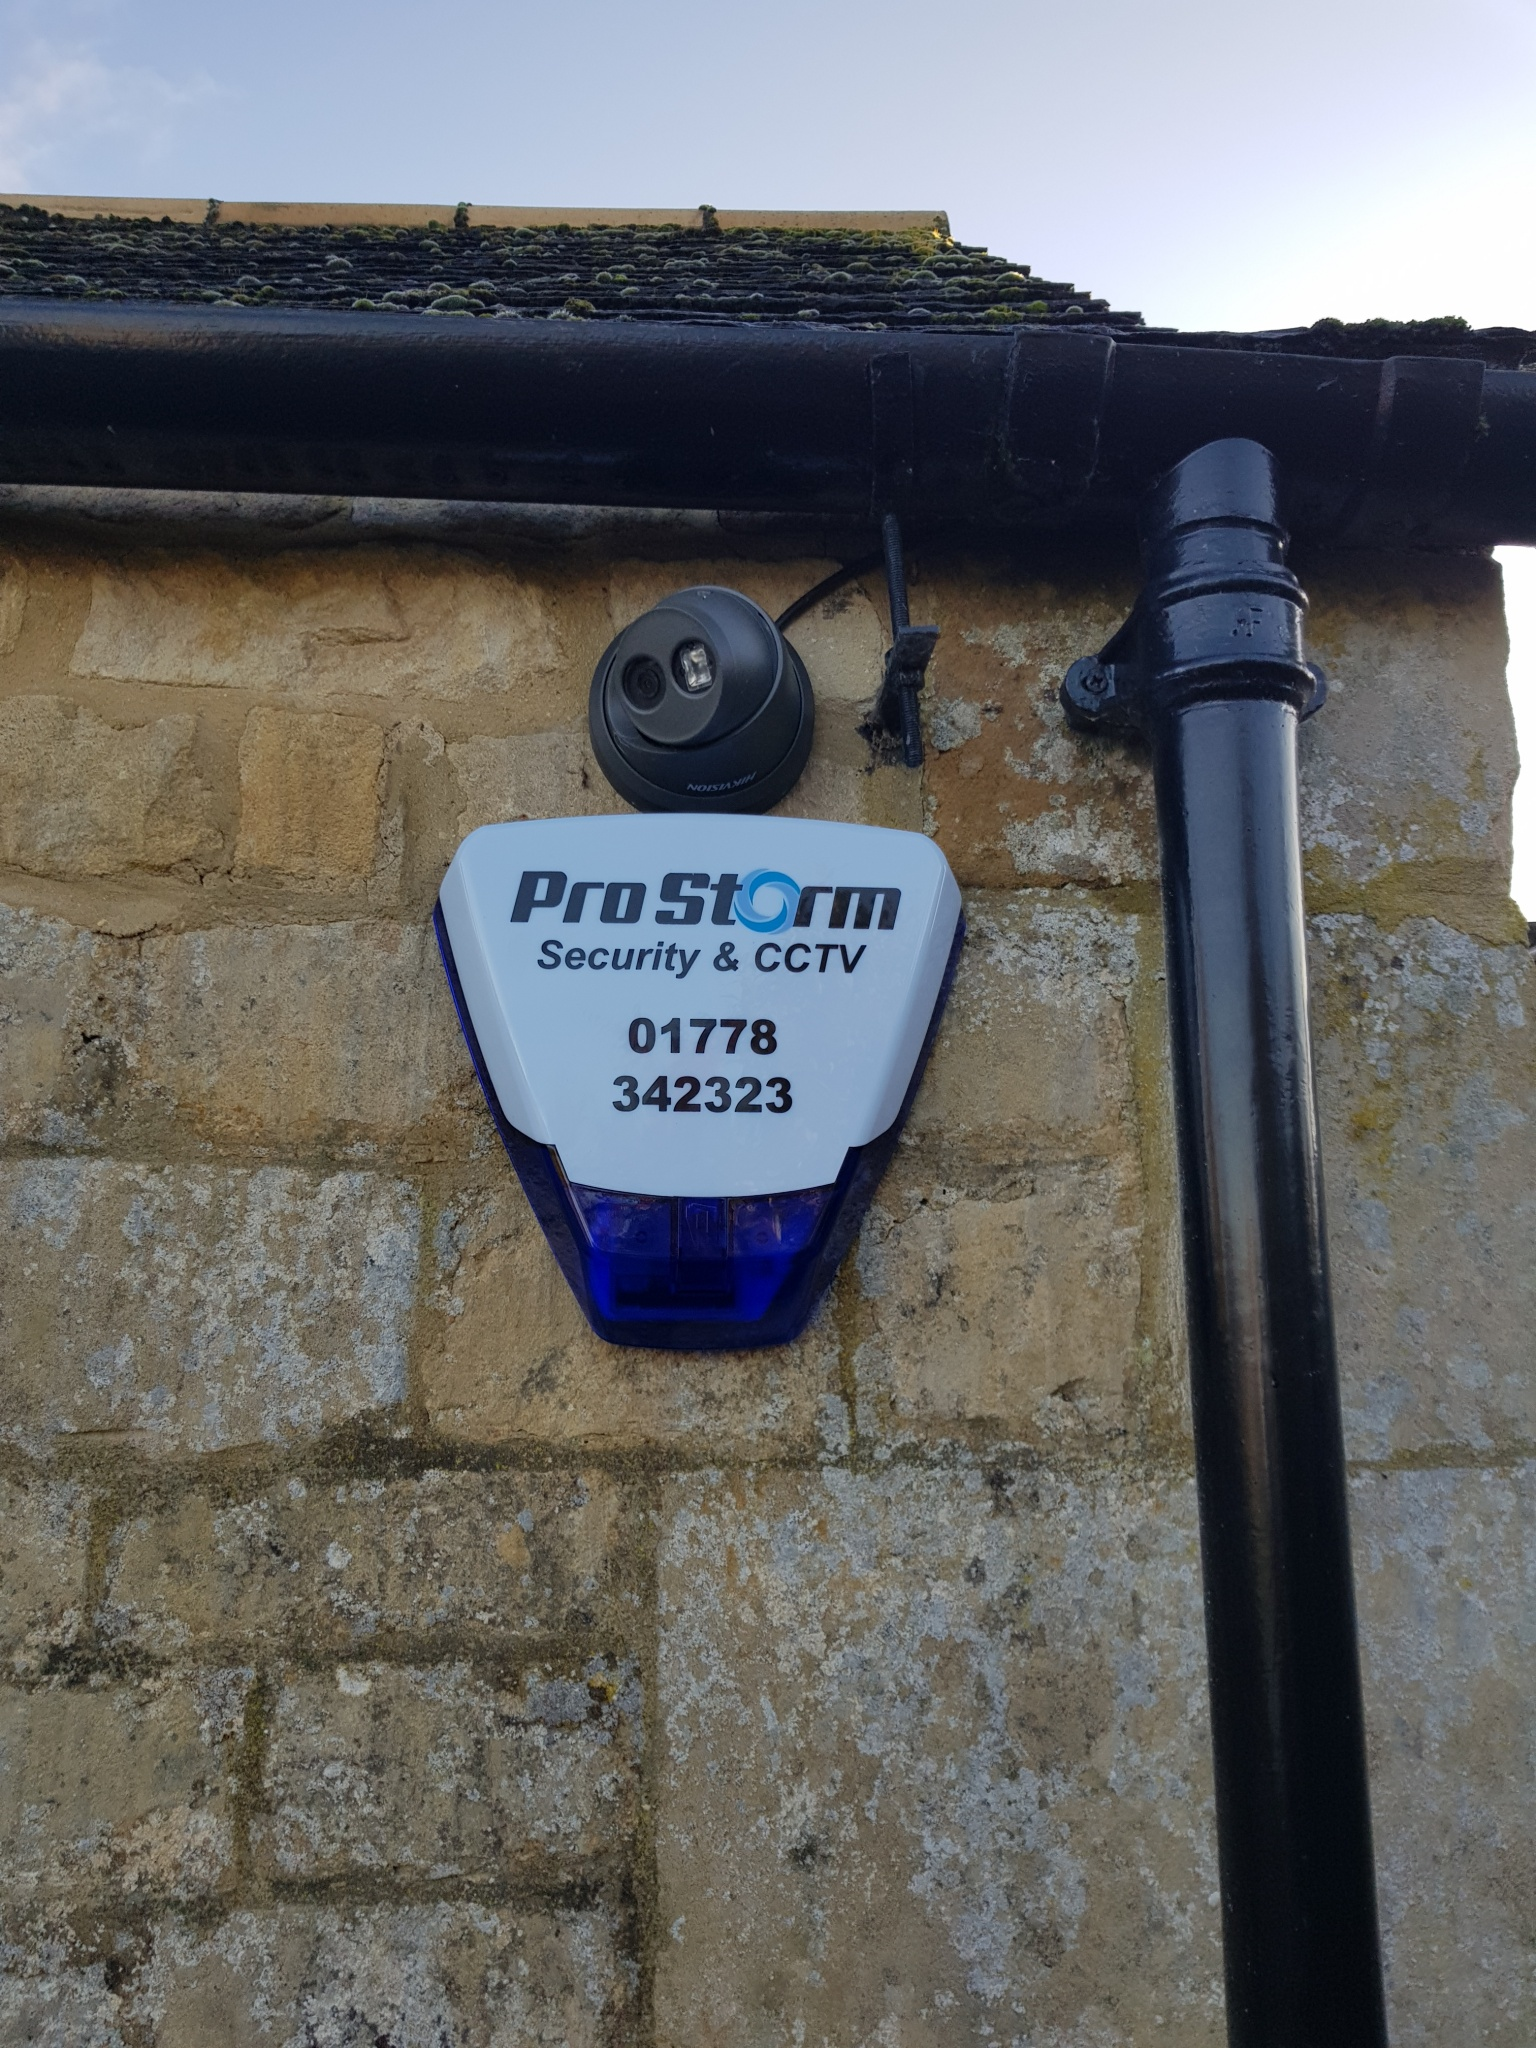 Pro Storm security & CCTV - domestic alarm box